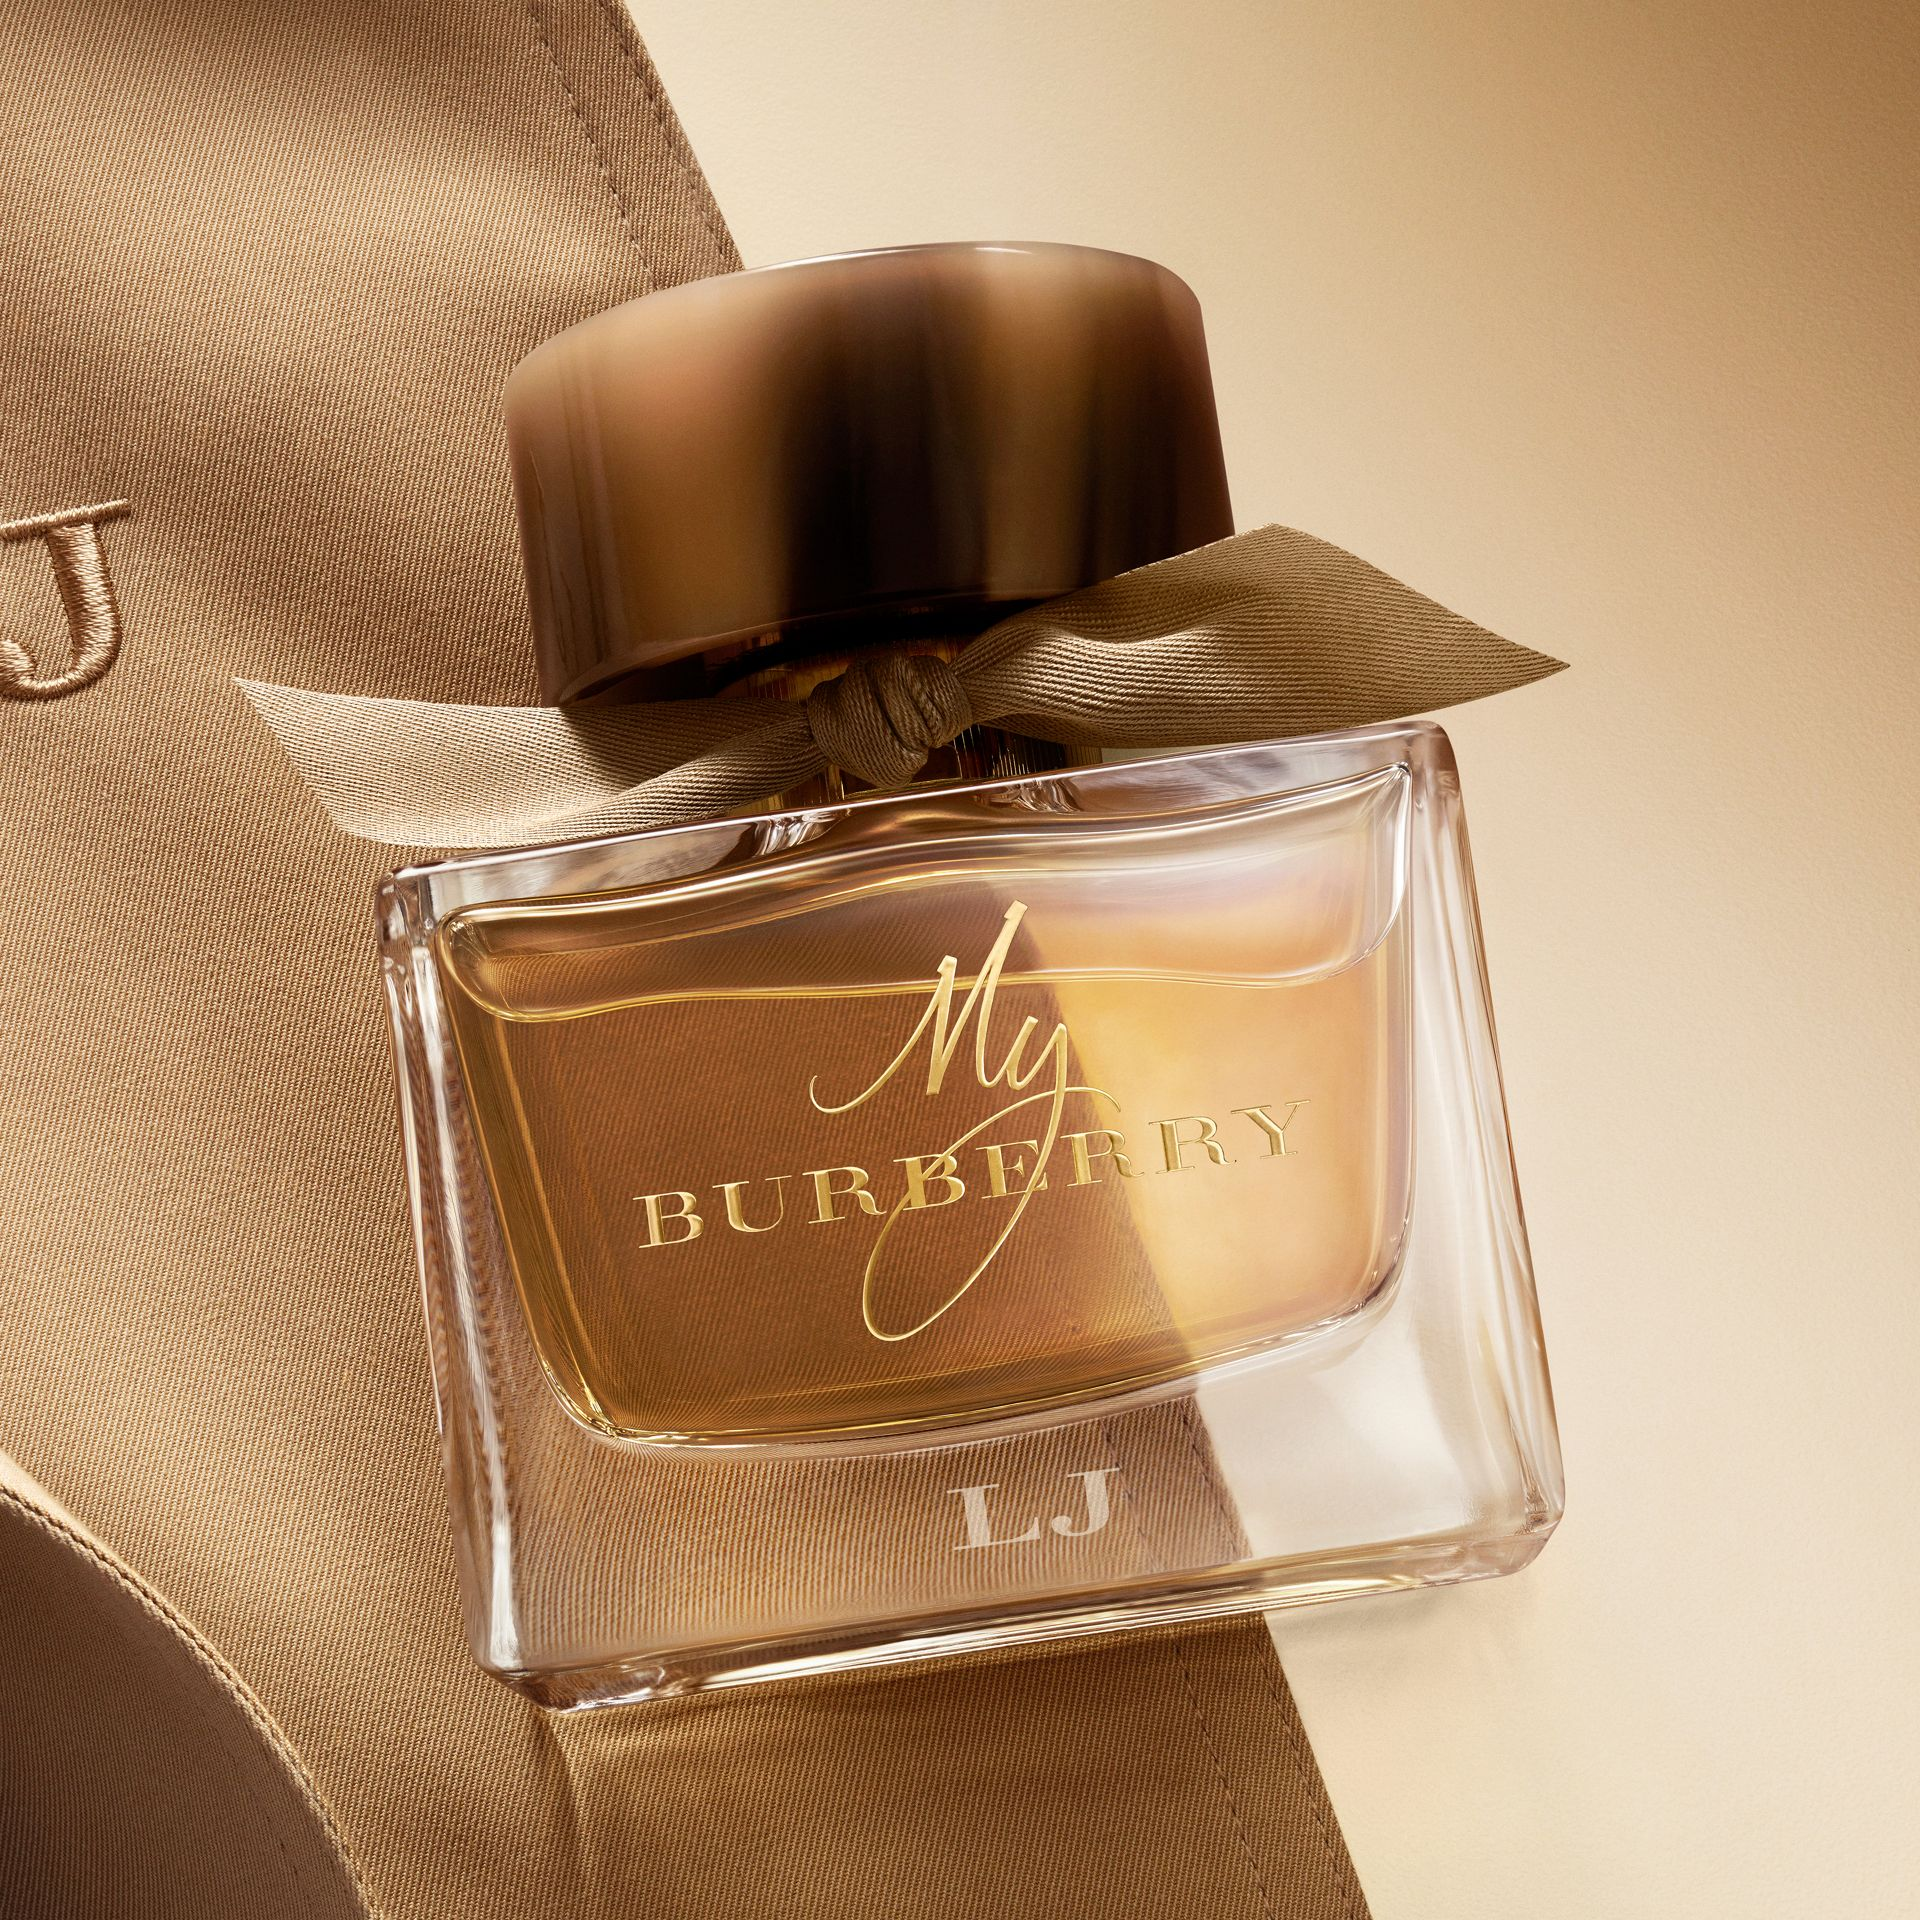 My Burberry Eau de Parfum Collector's Edition 900ml - gallery image 5